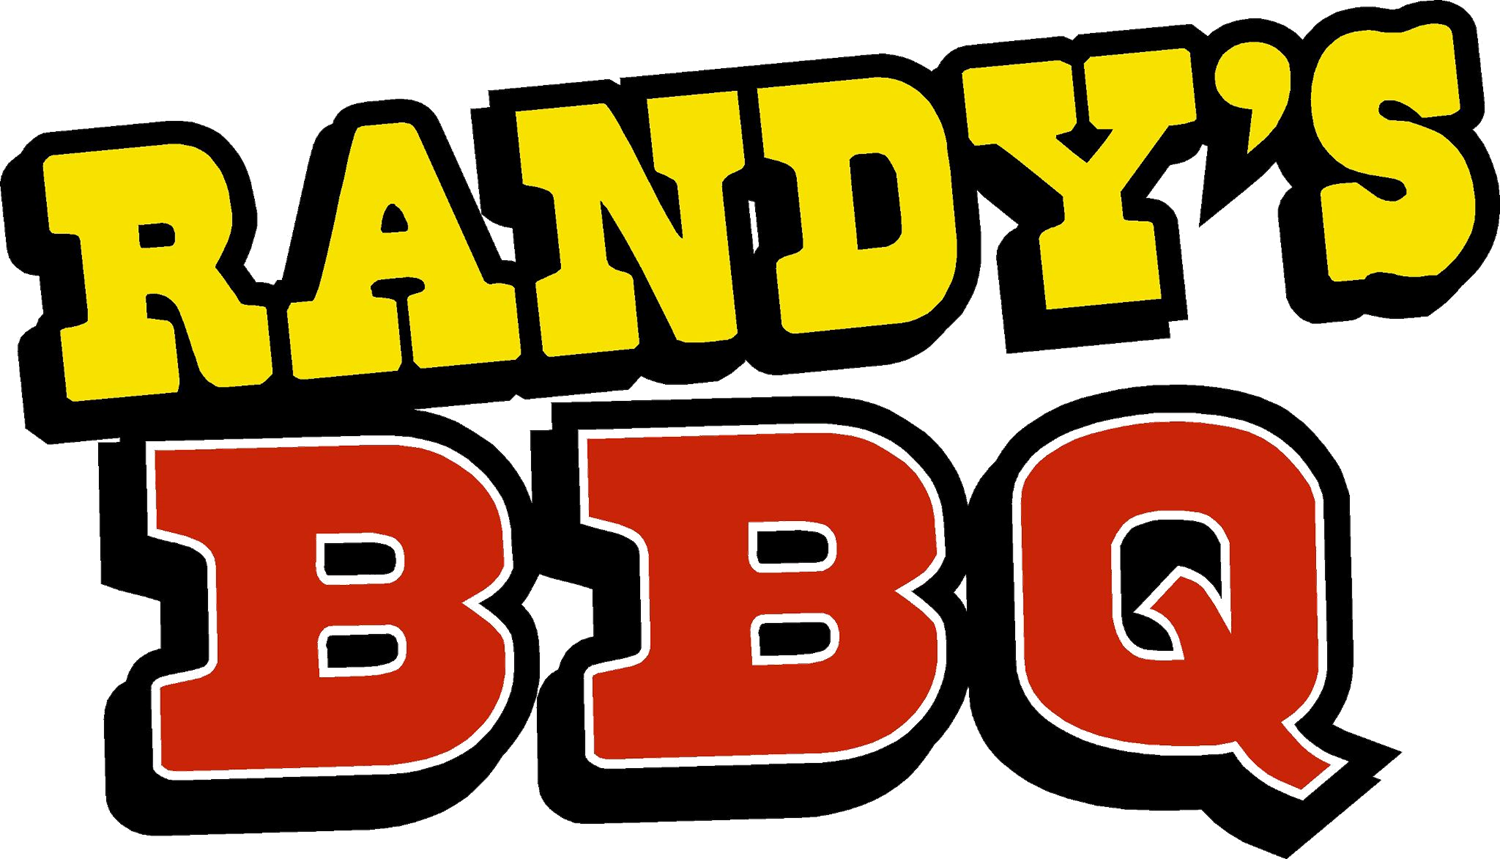 Randy's Barbecue